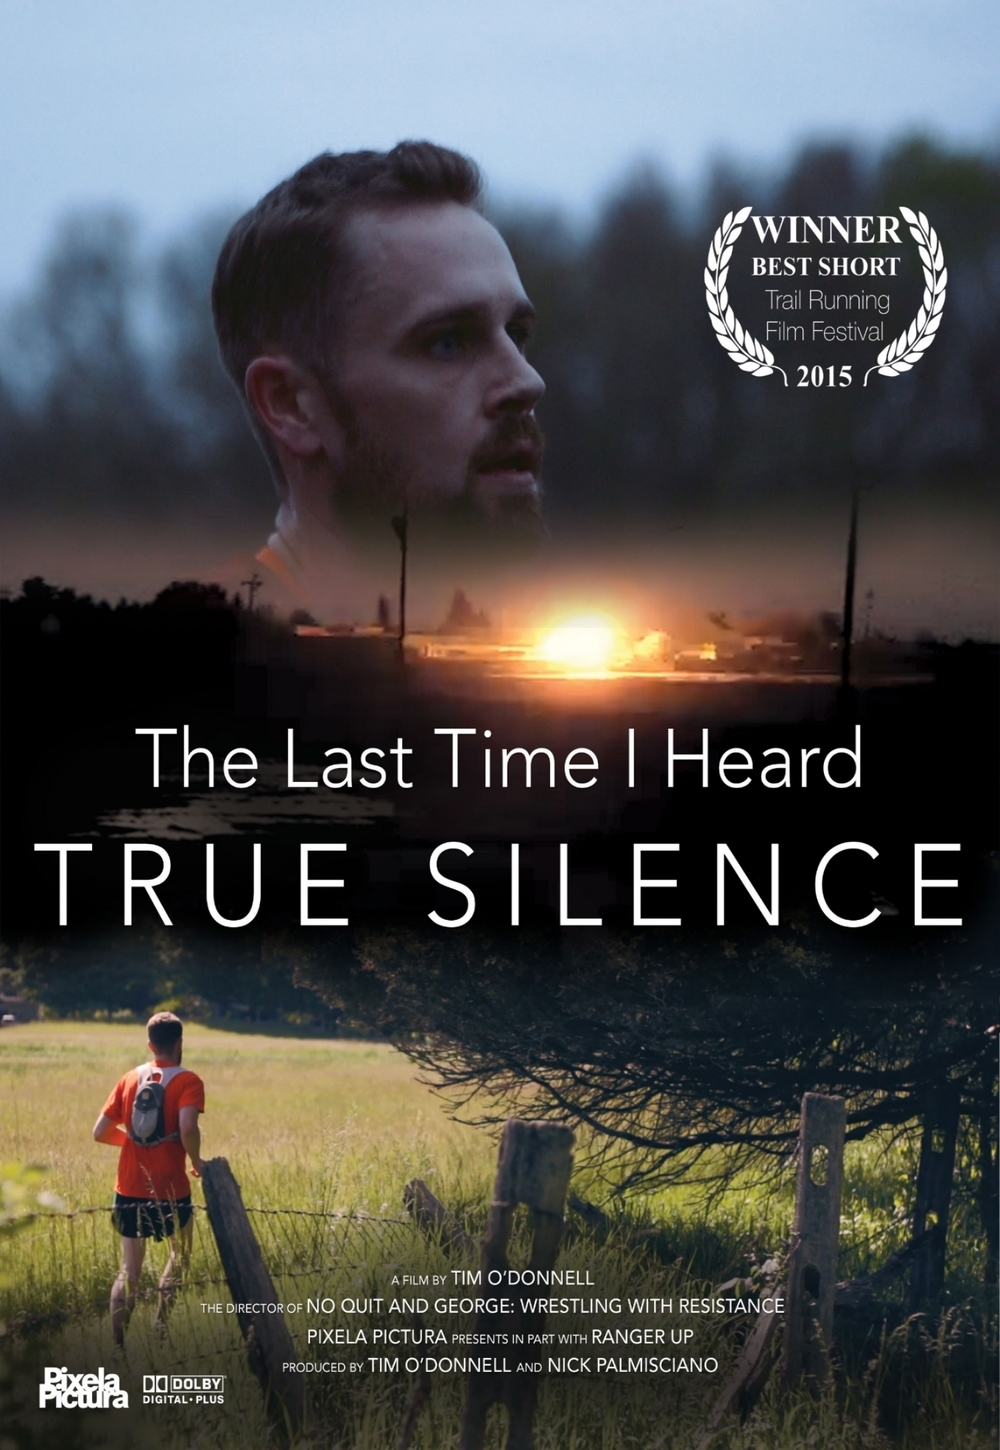 The Last Time I Heard True Silence